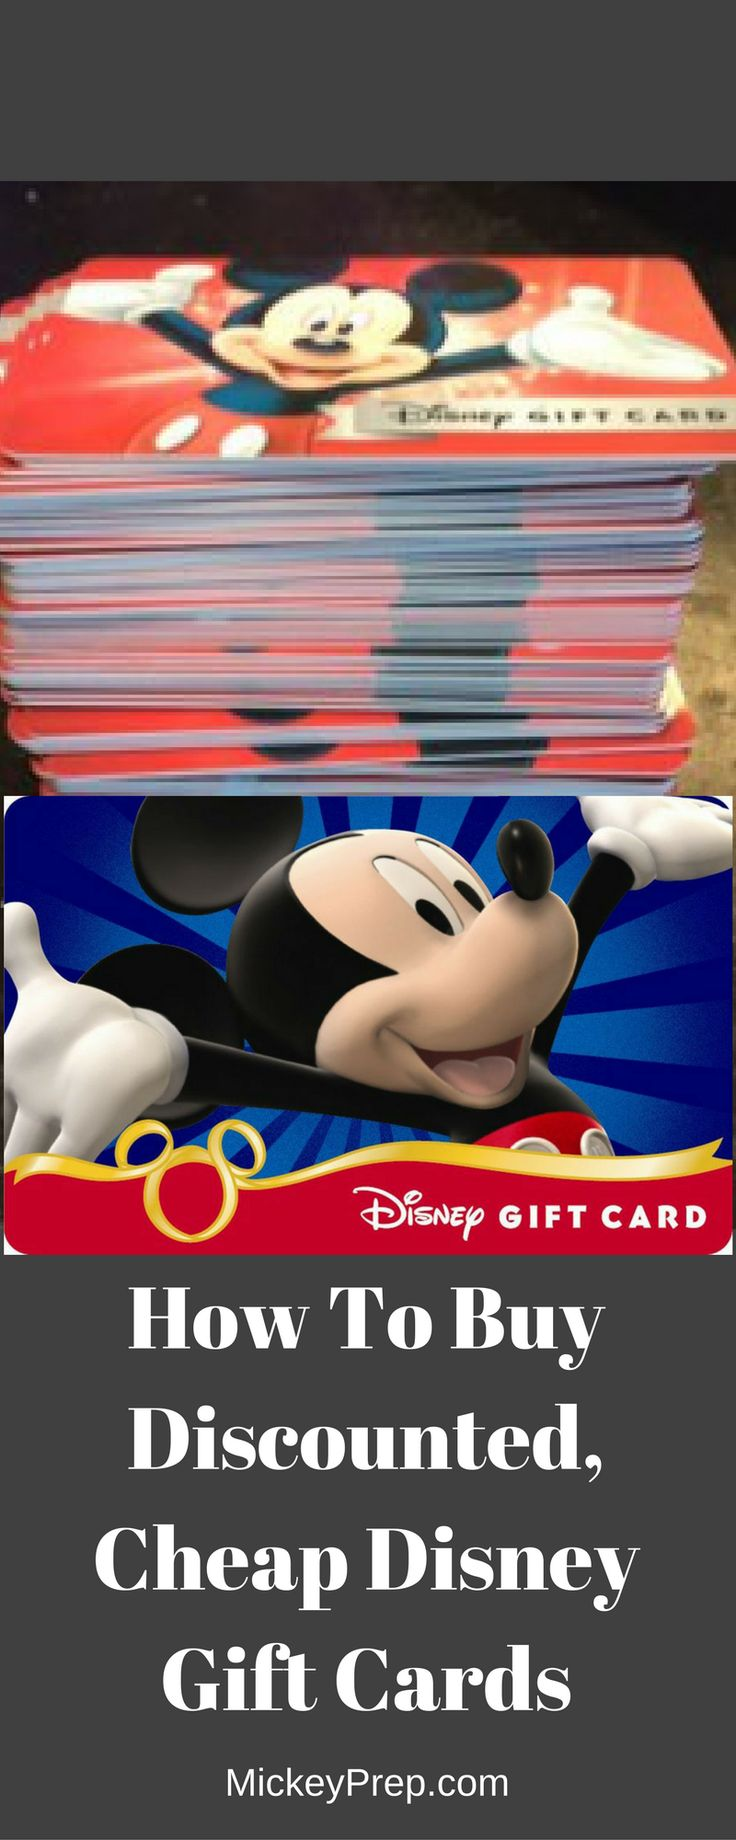 How To Buy Discounted, Cheap Disney Gift Cards